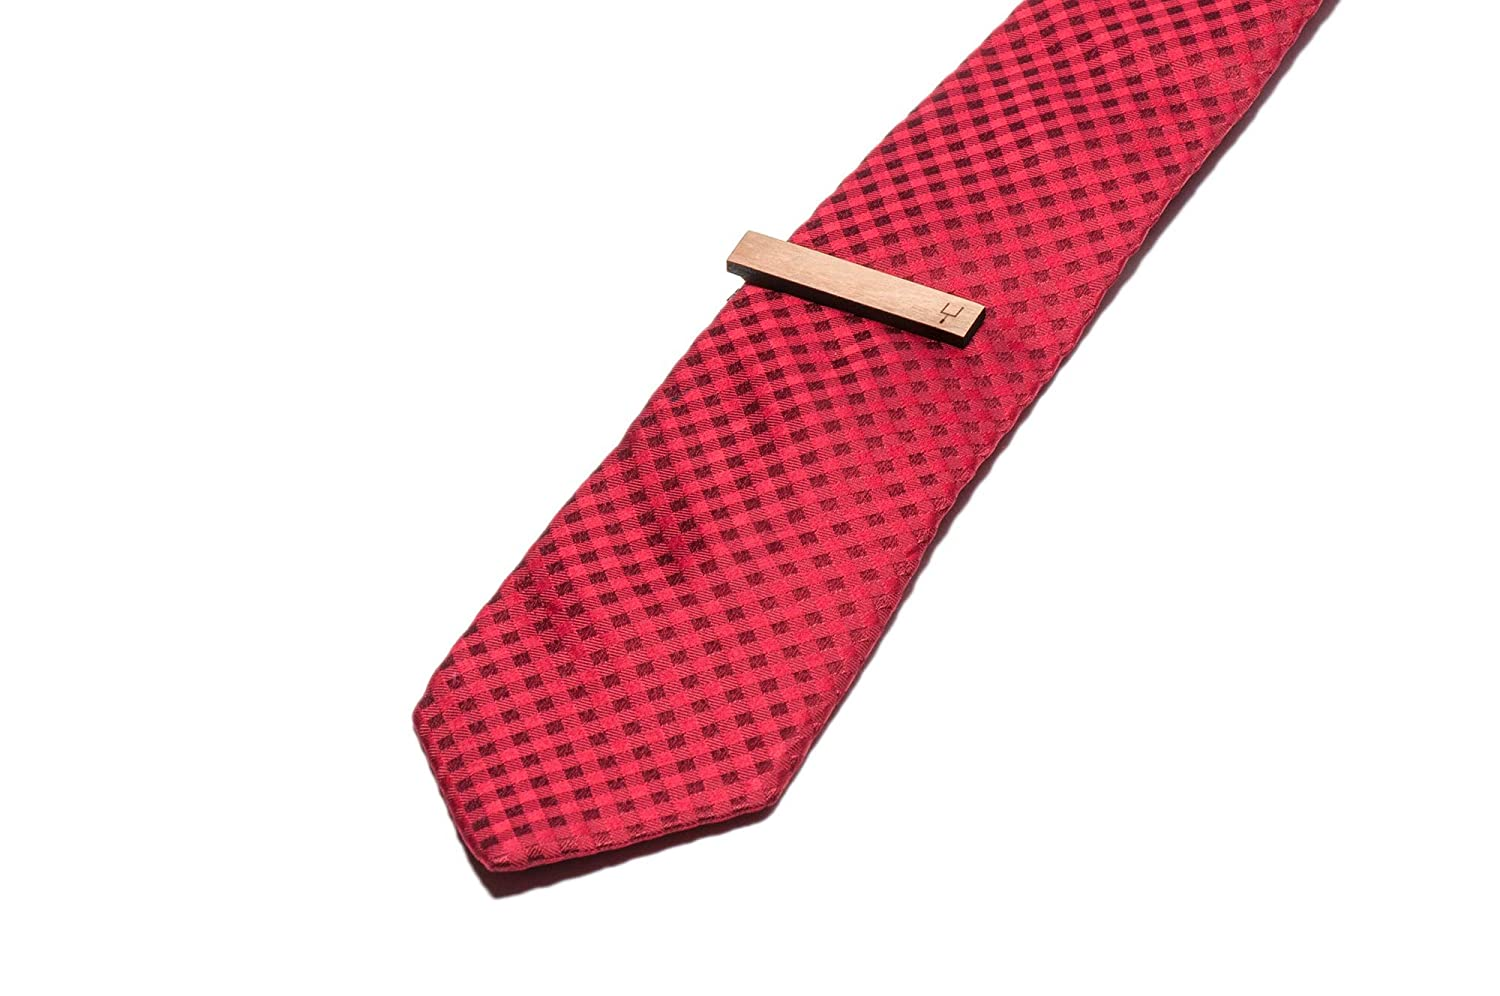 Wooden Accessories Company Wooden Tie Clips with Laser Engraved Field Goal Post Design Cherry Wood Tie Bar Engraved in The USA